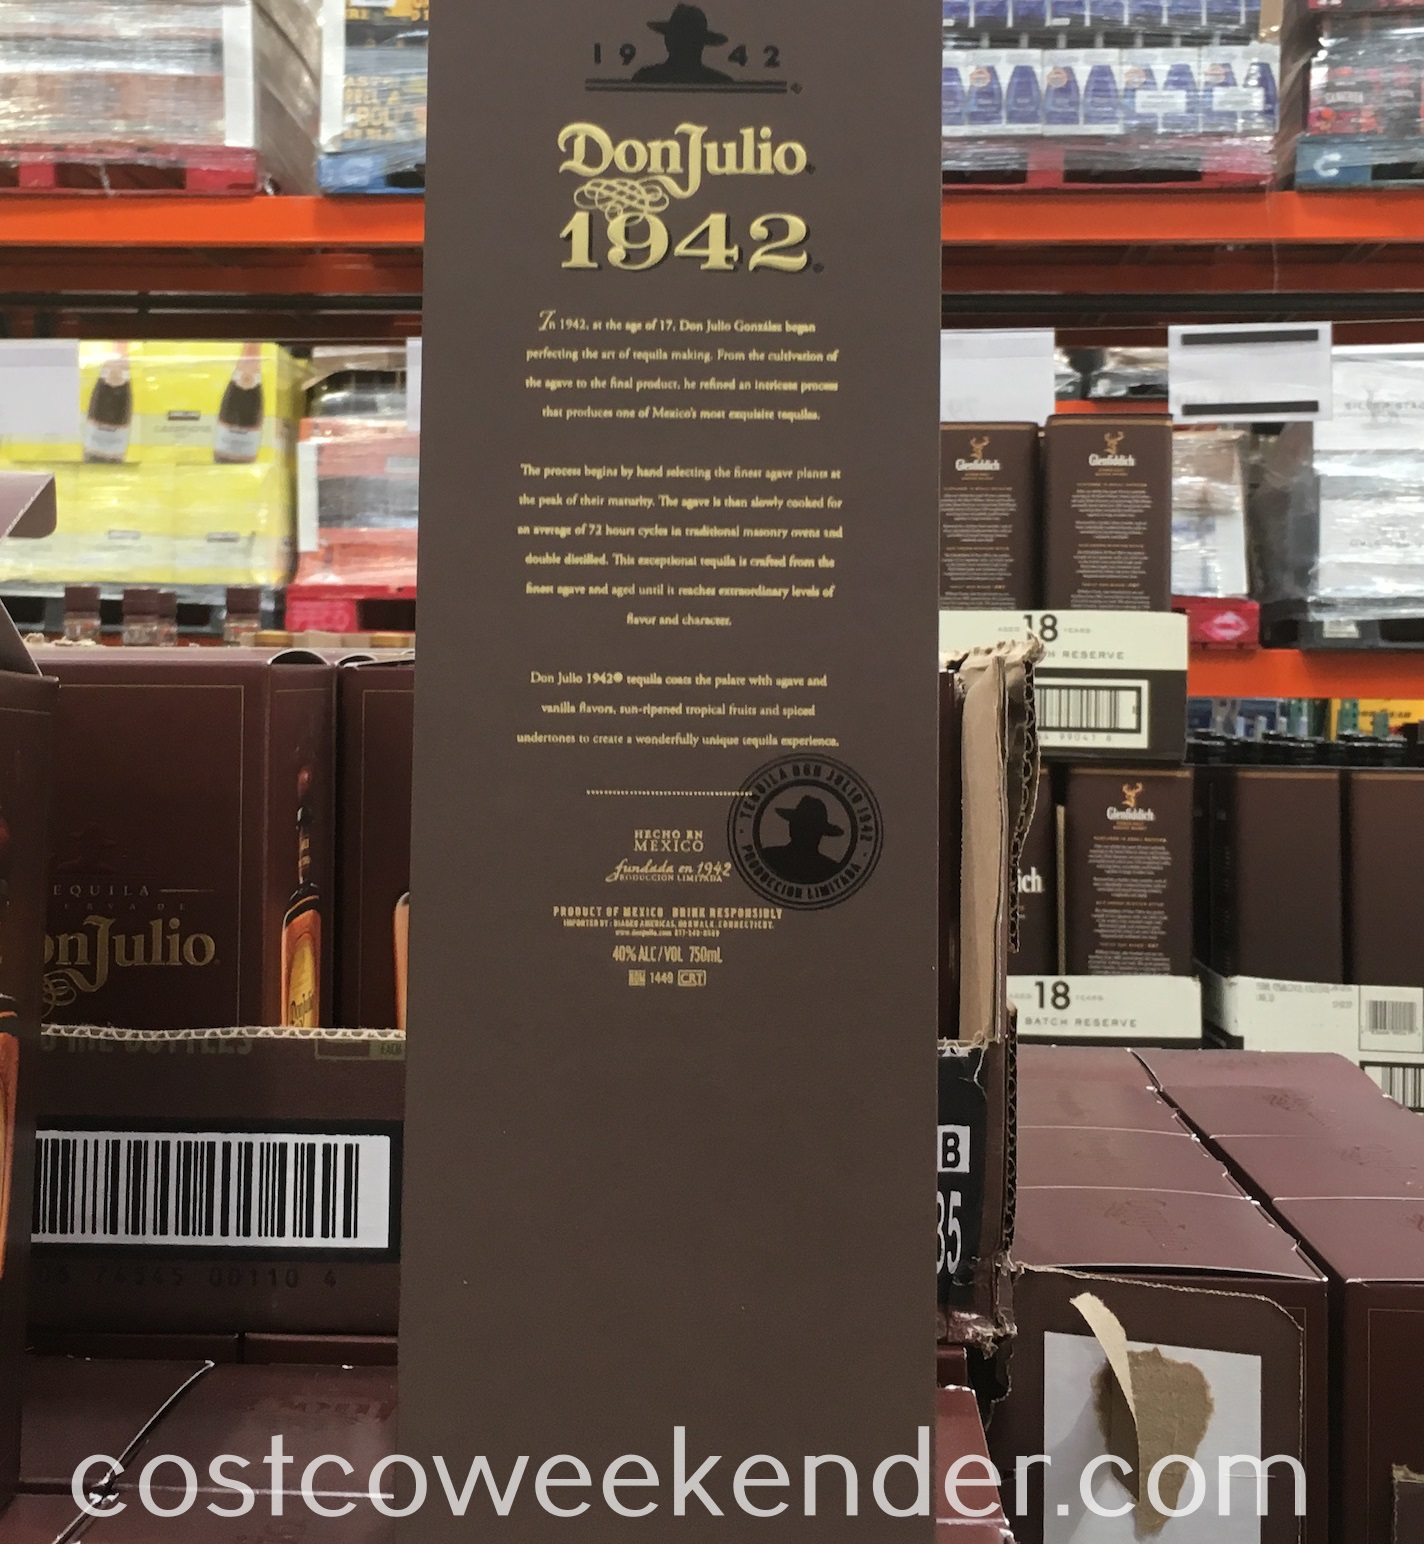 Don Julio 1942 Tequila - great for sipping